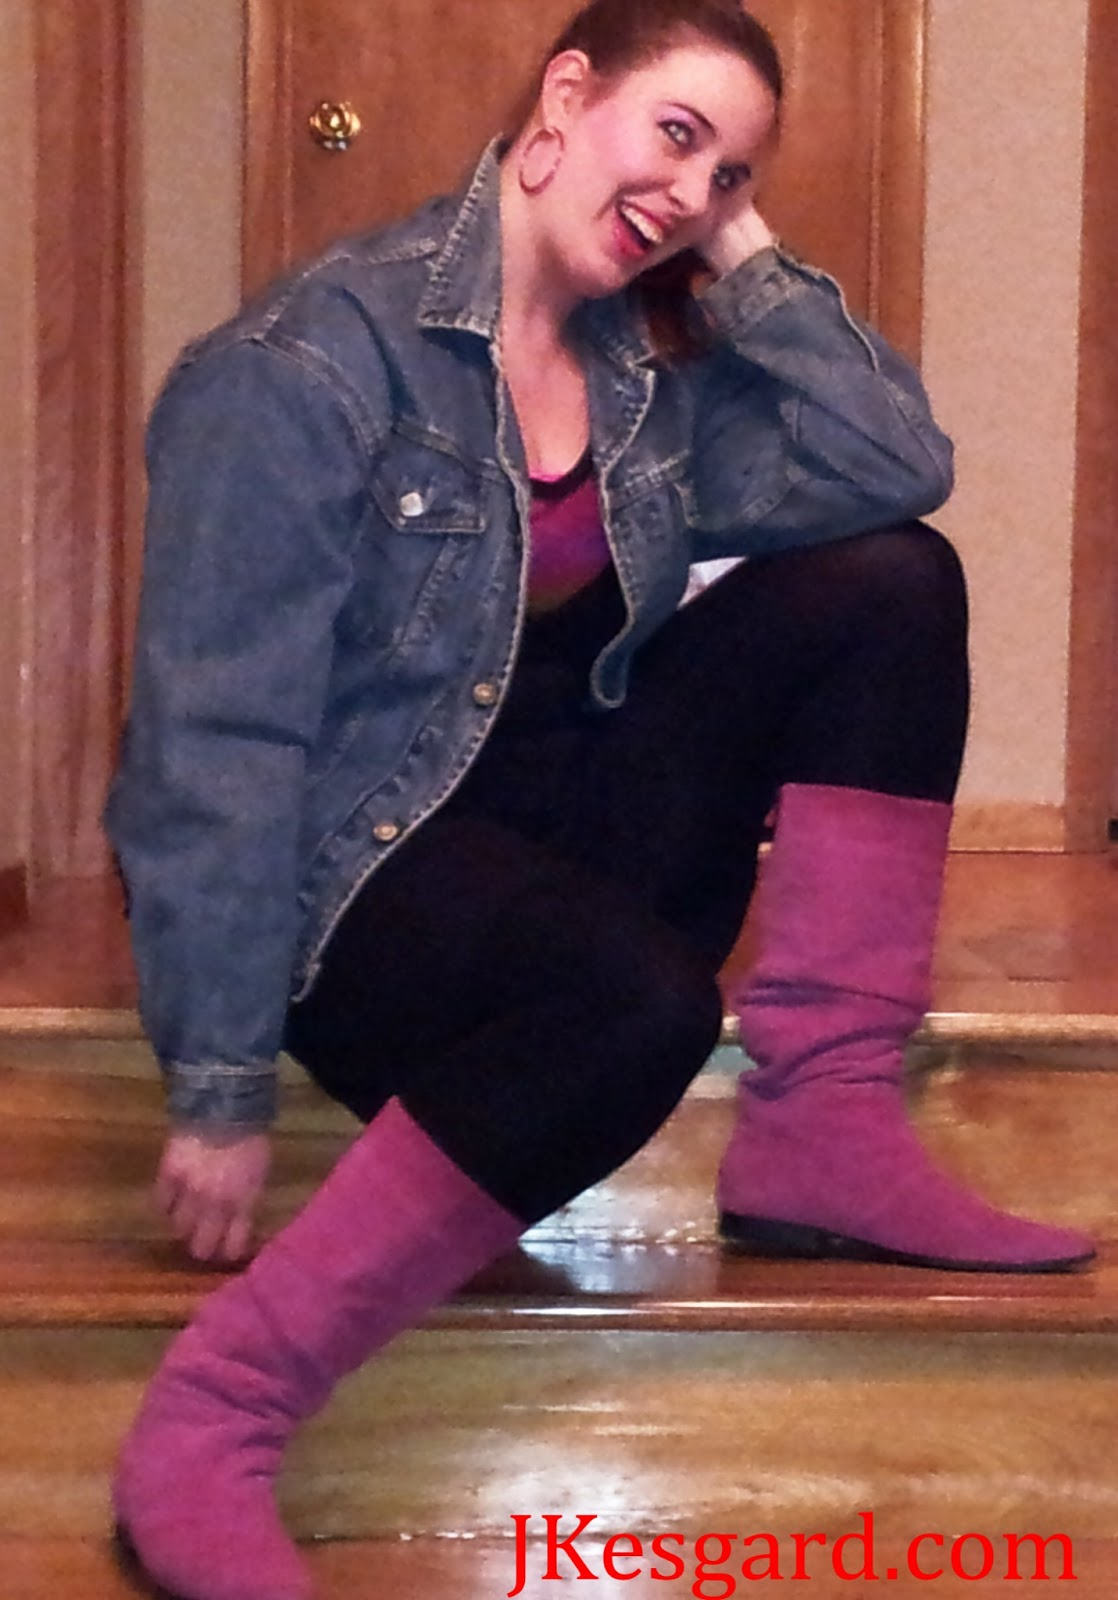 Me, on the staircase in horrible 80s attire